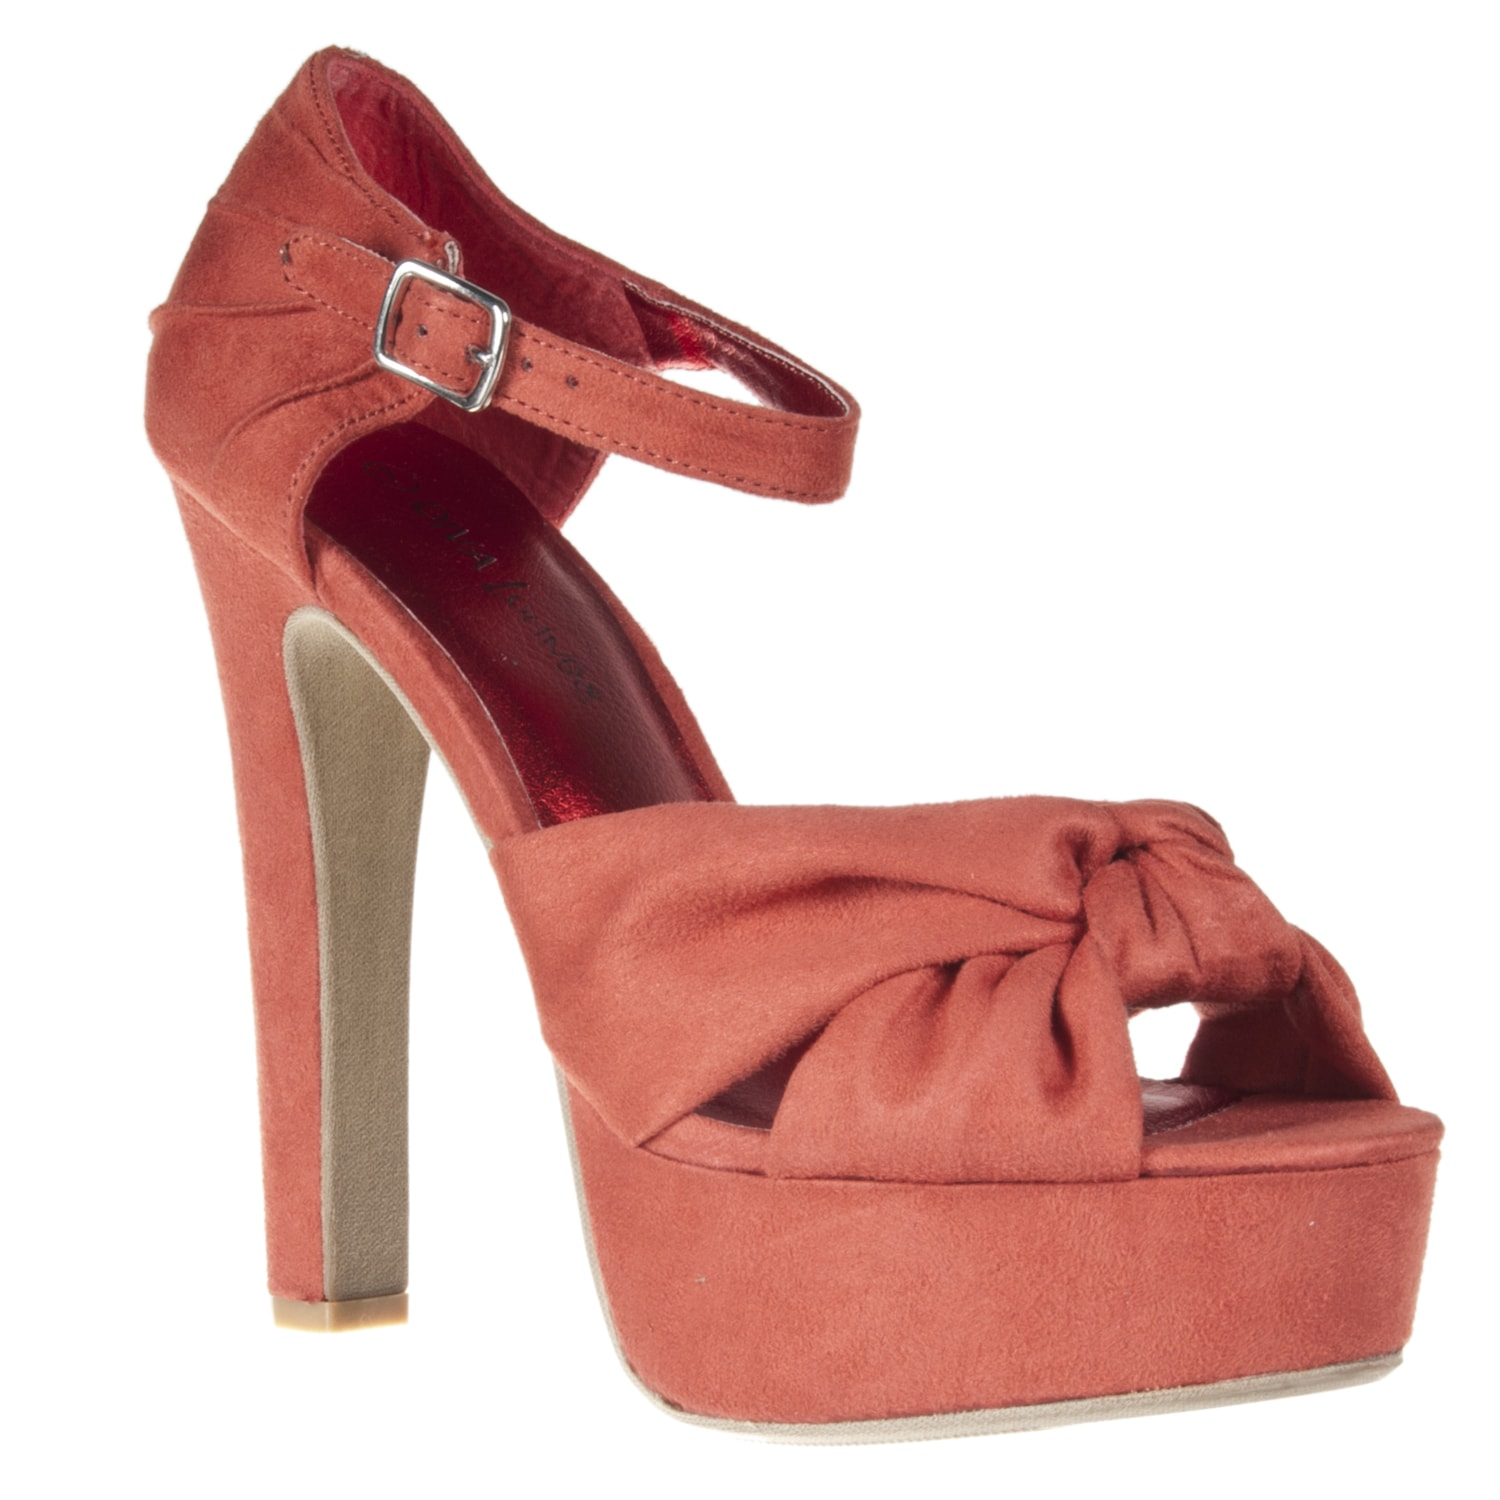 Riverberry Women's 'Sabine' Coral Faux Suede Peep Toes